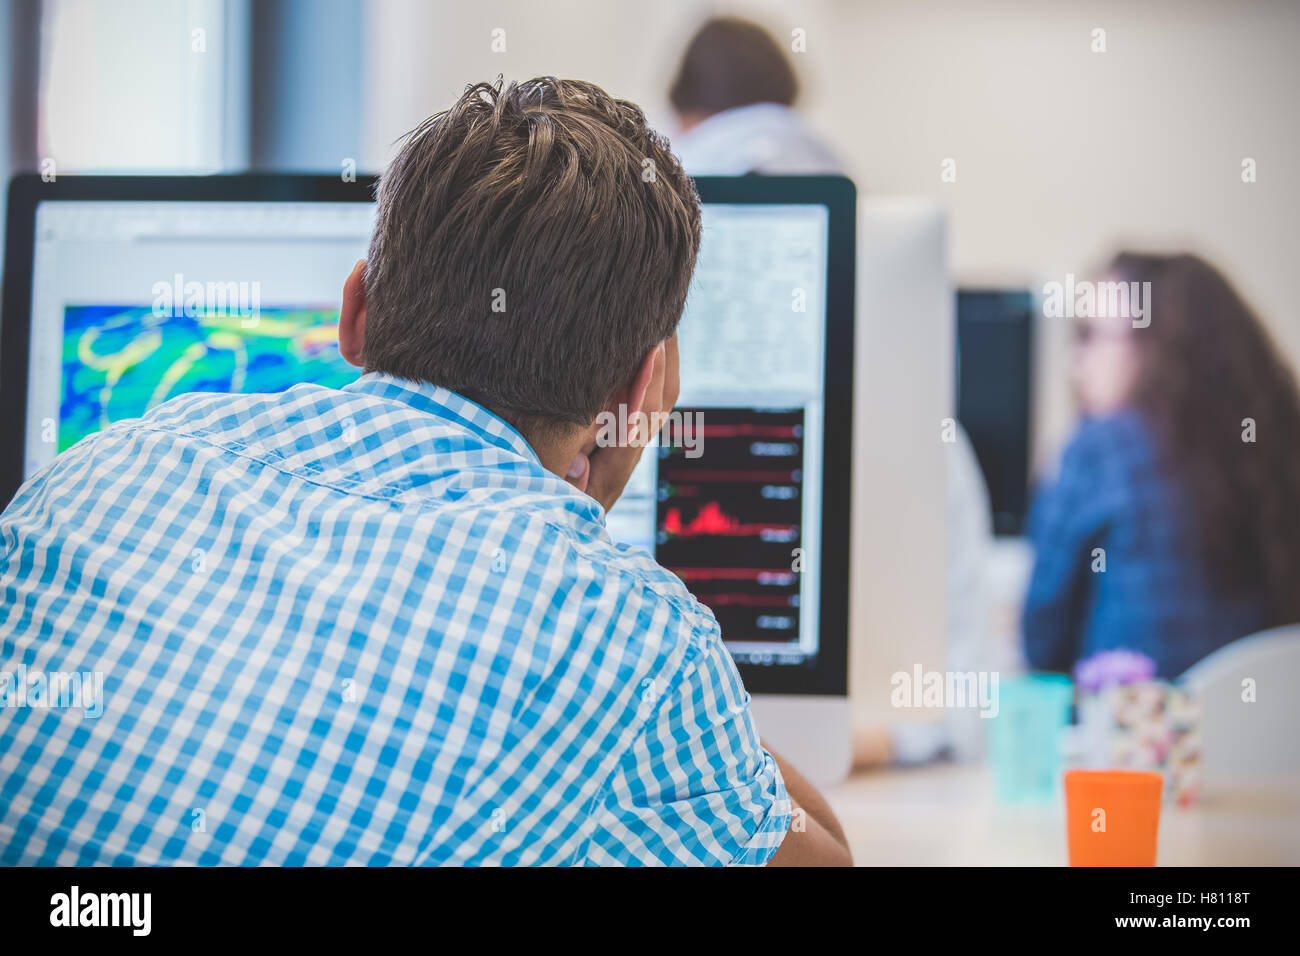 Thoughtful young programmer coding on computer - Stock Image